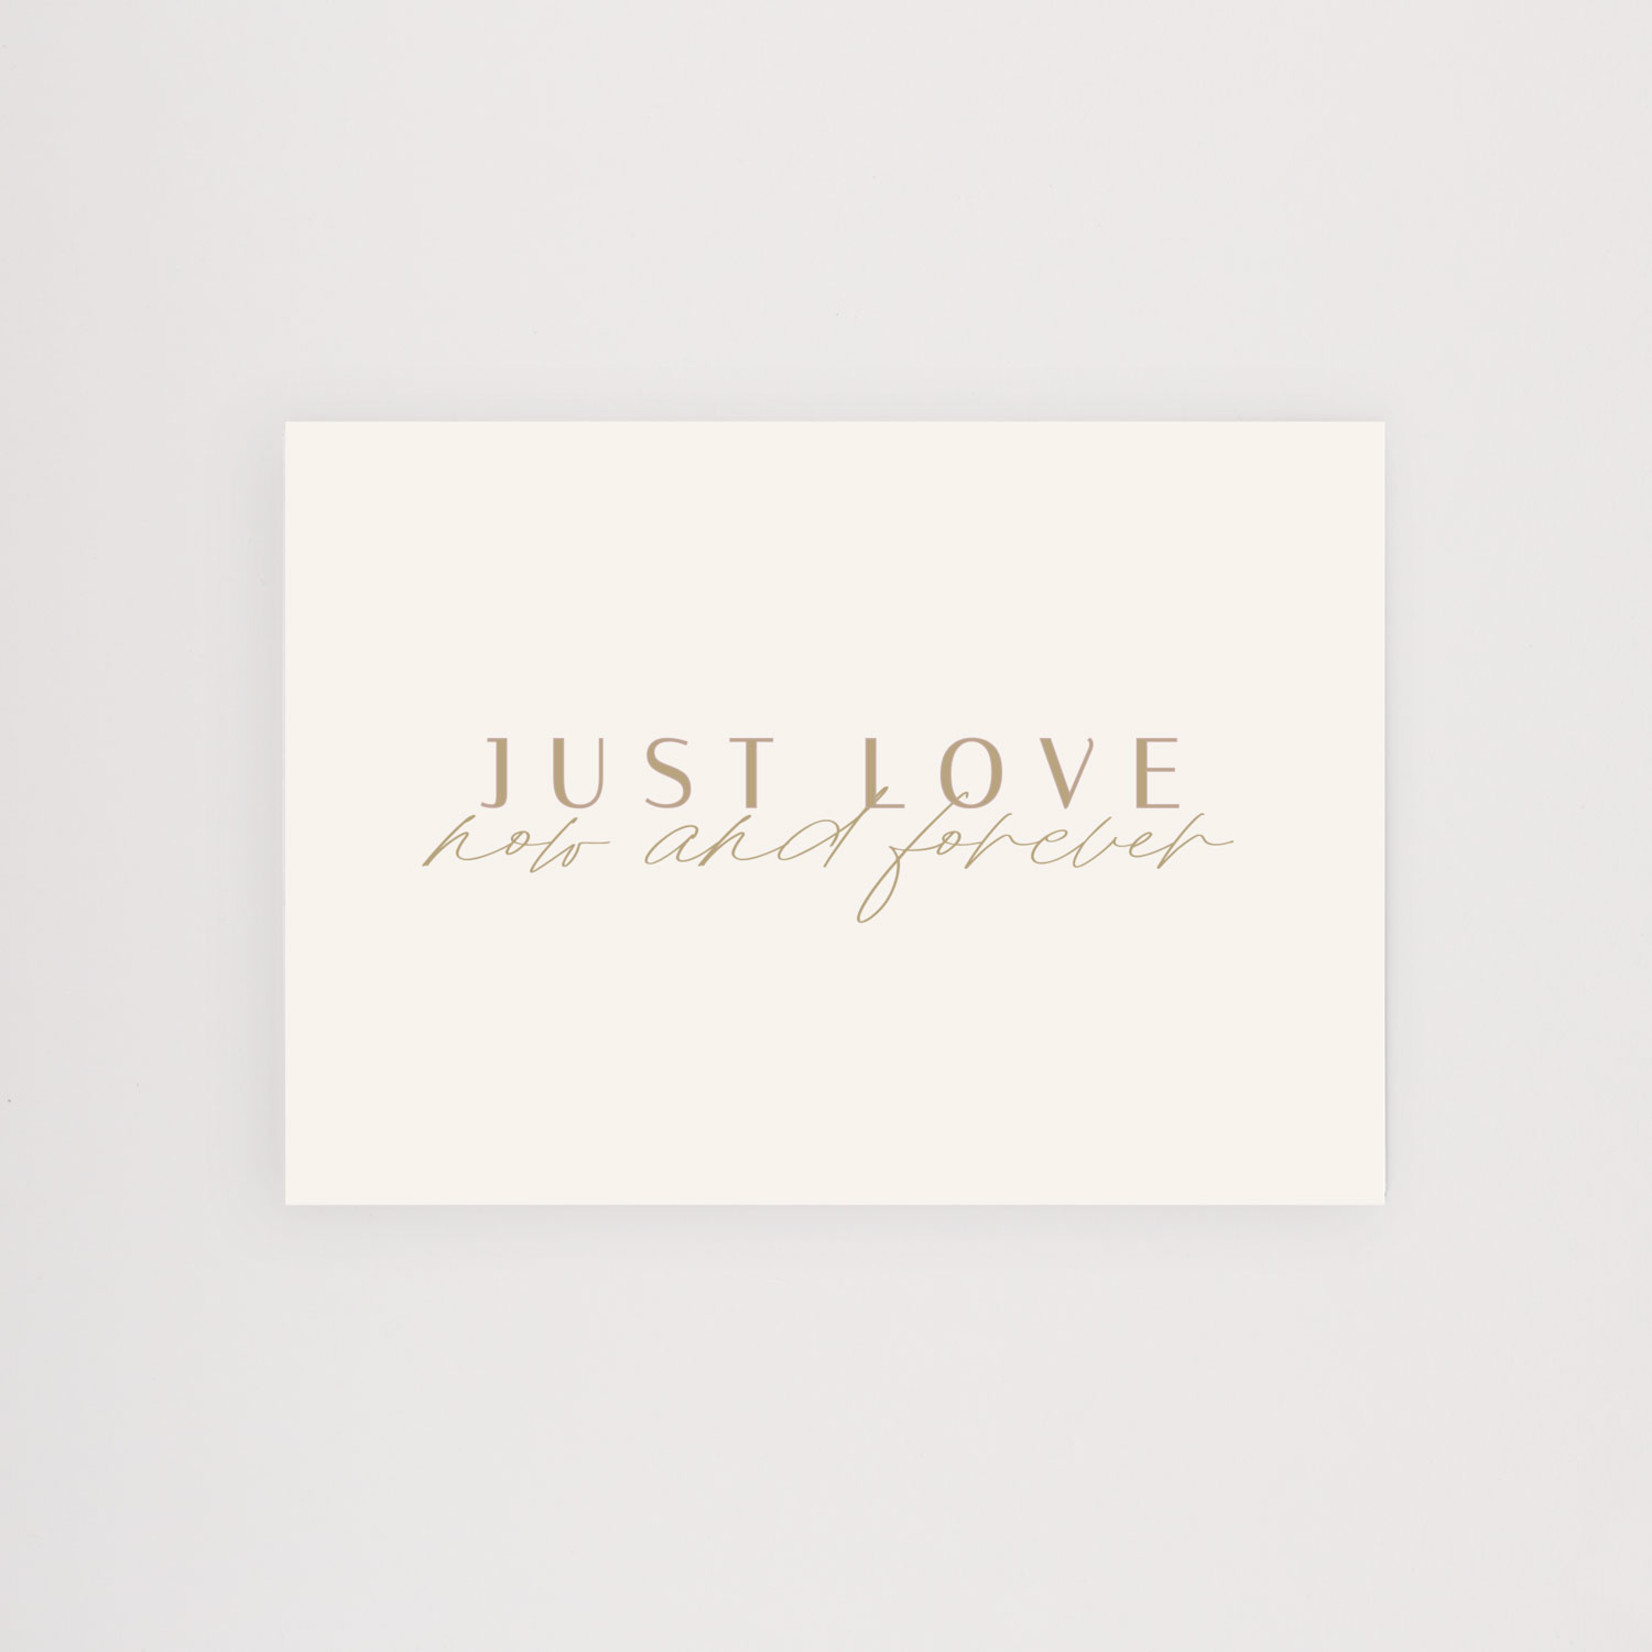 Postkarte Just Love now and forever